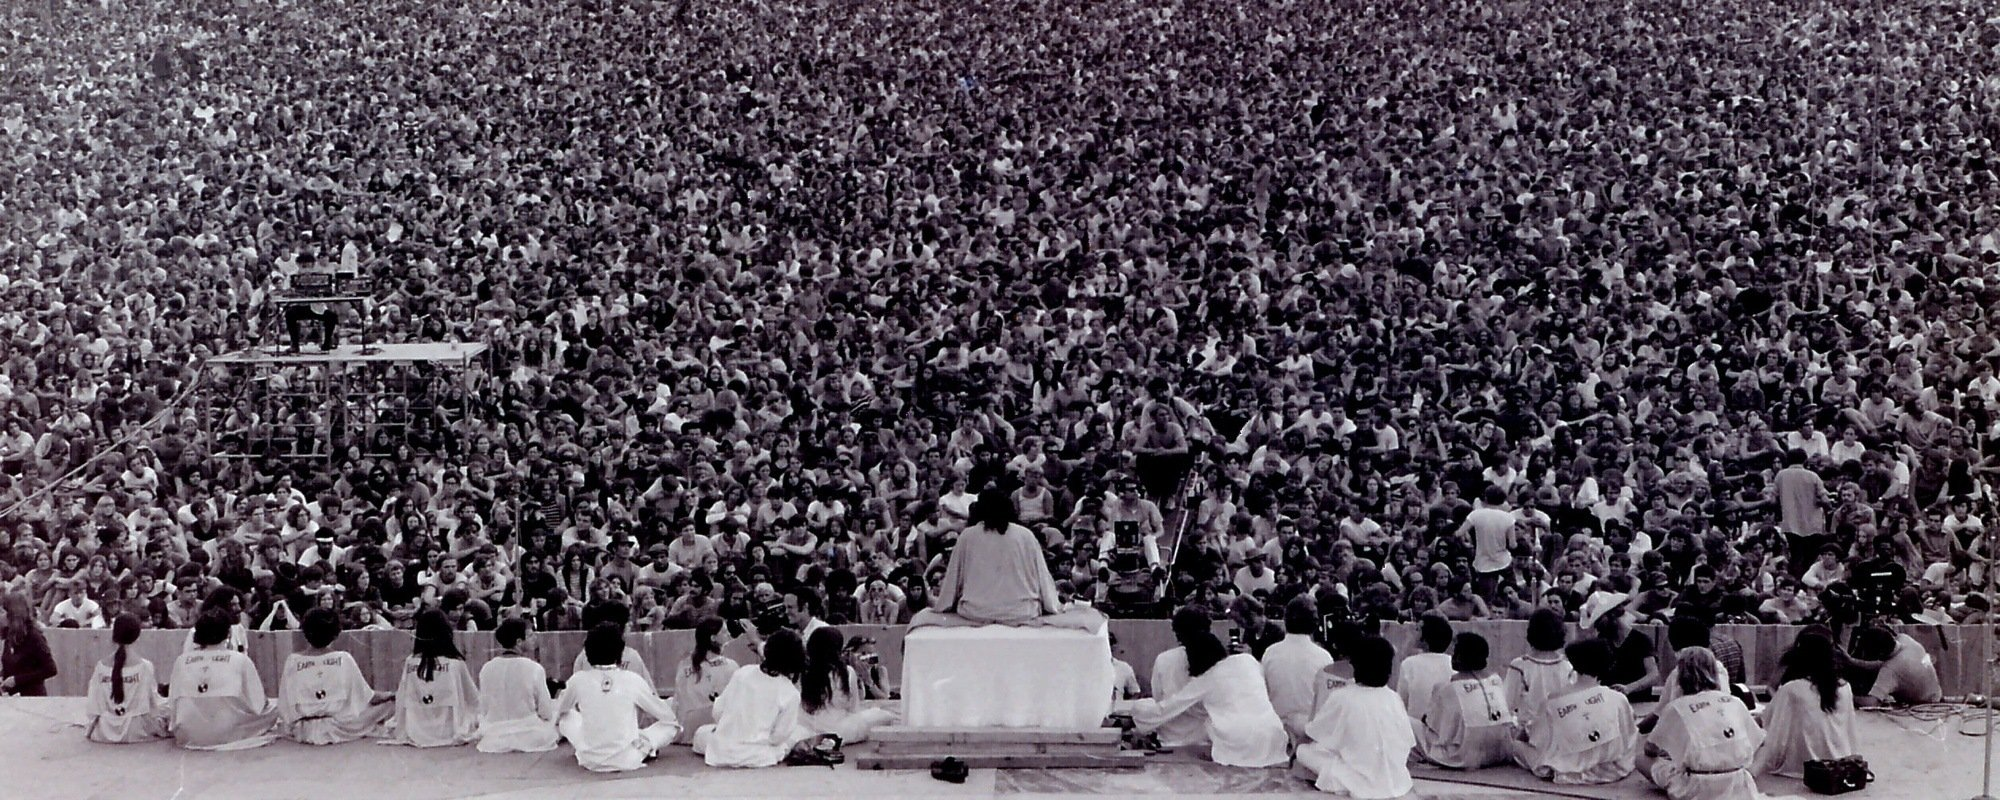 The Unadulterated History Of Woodstock Music Festival